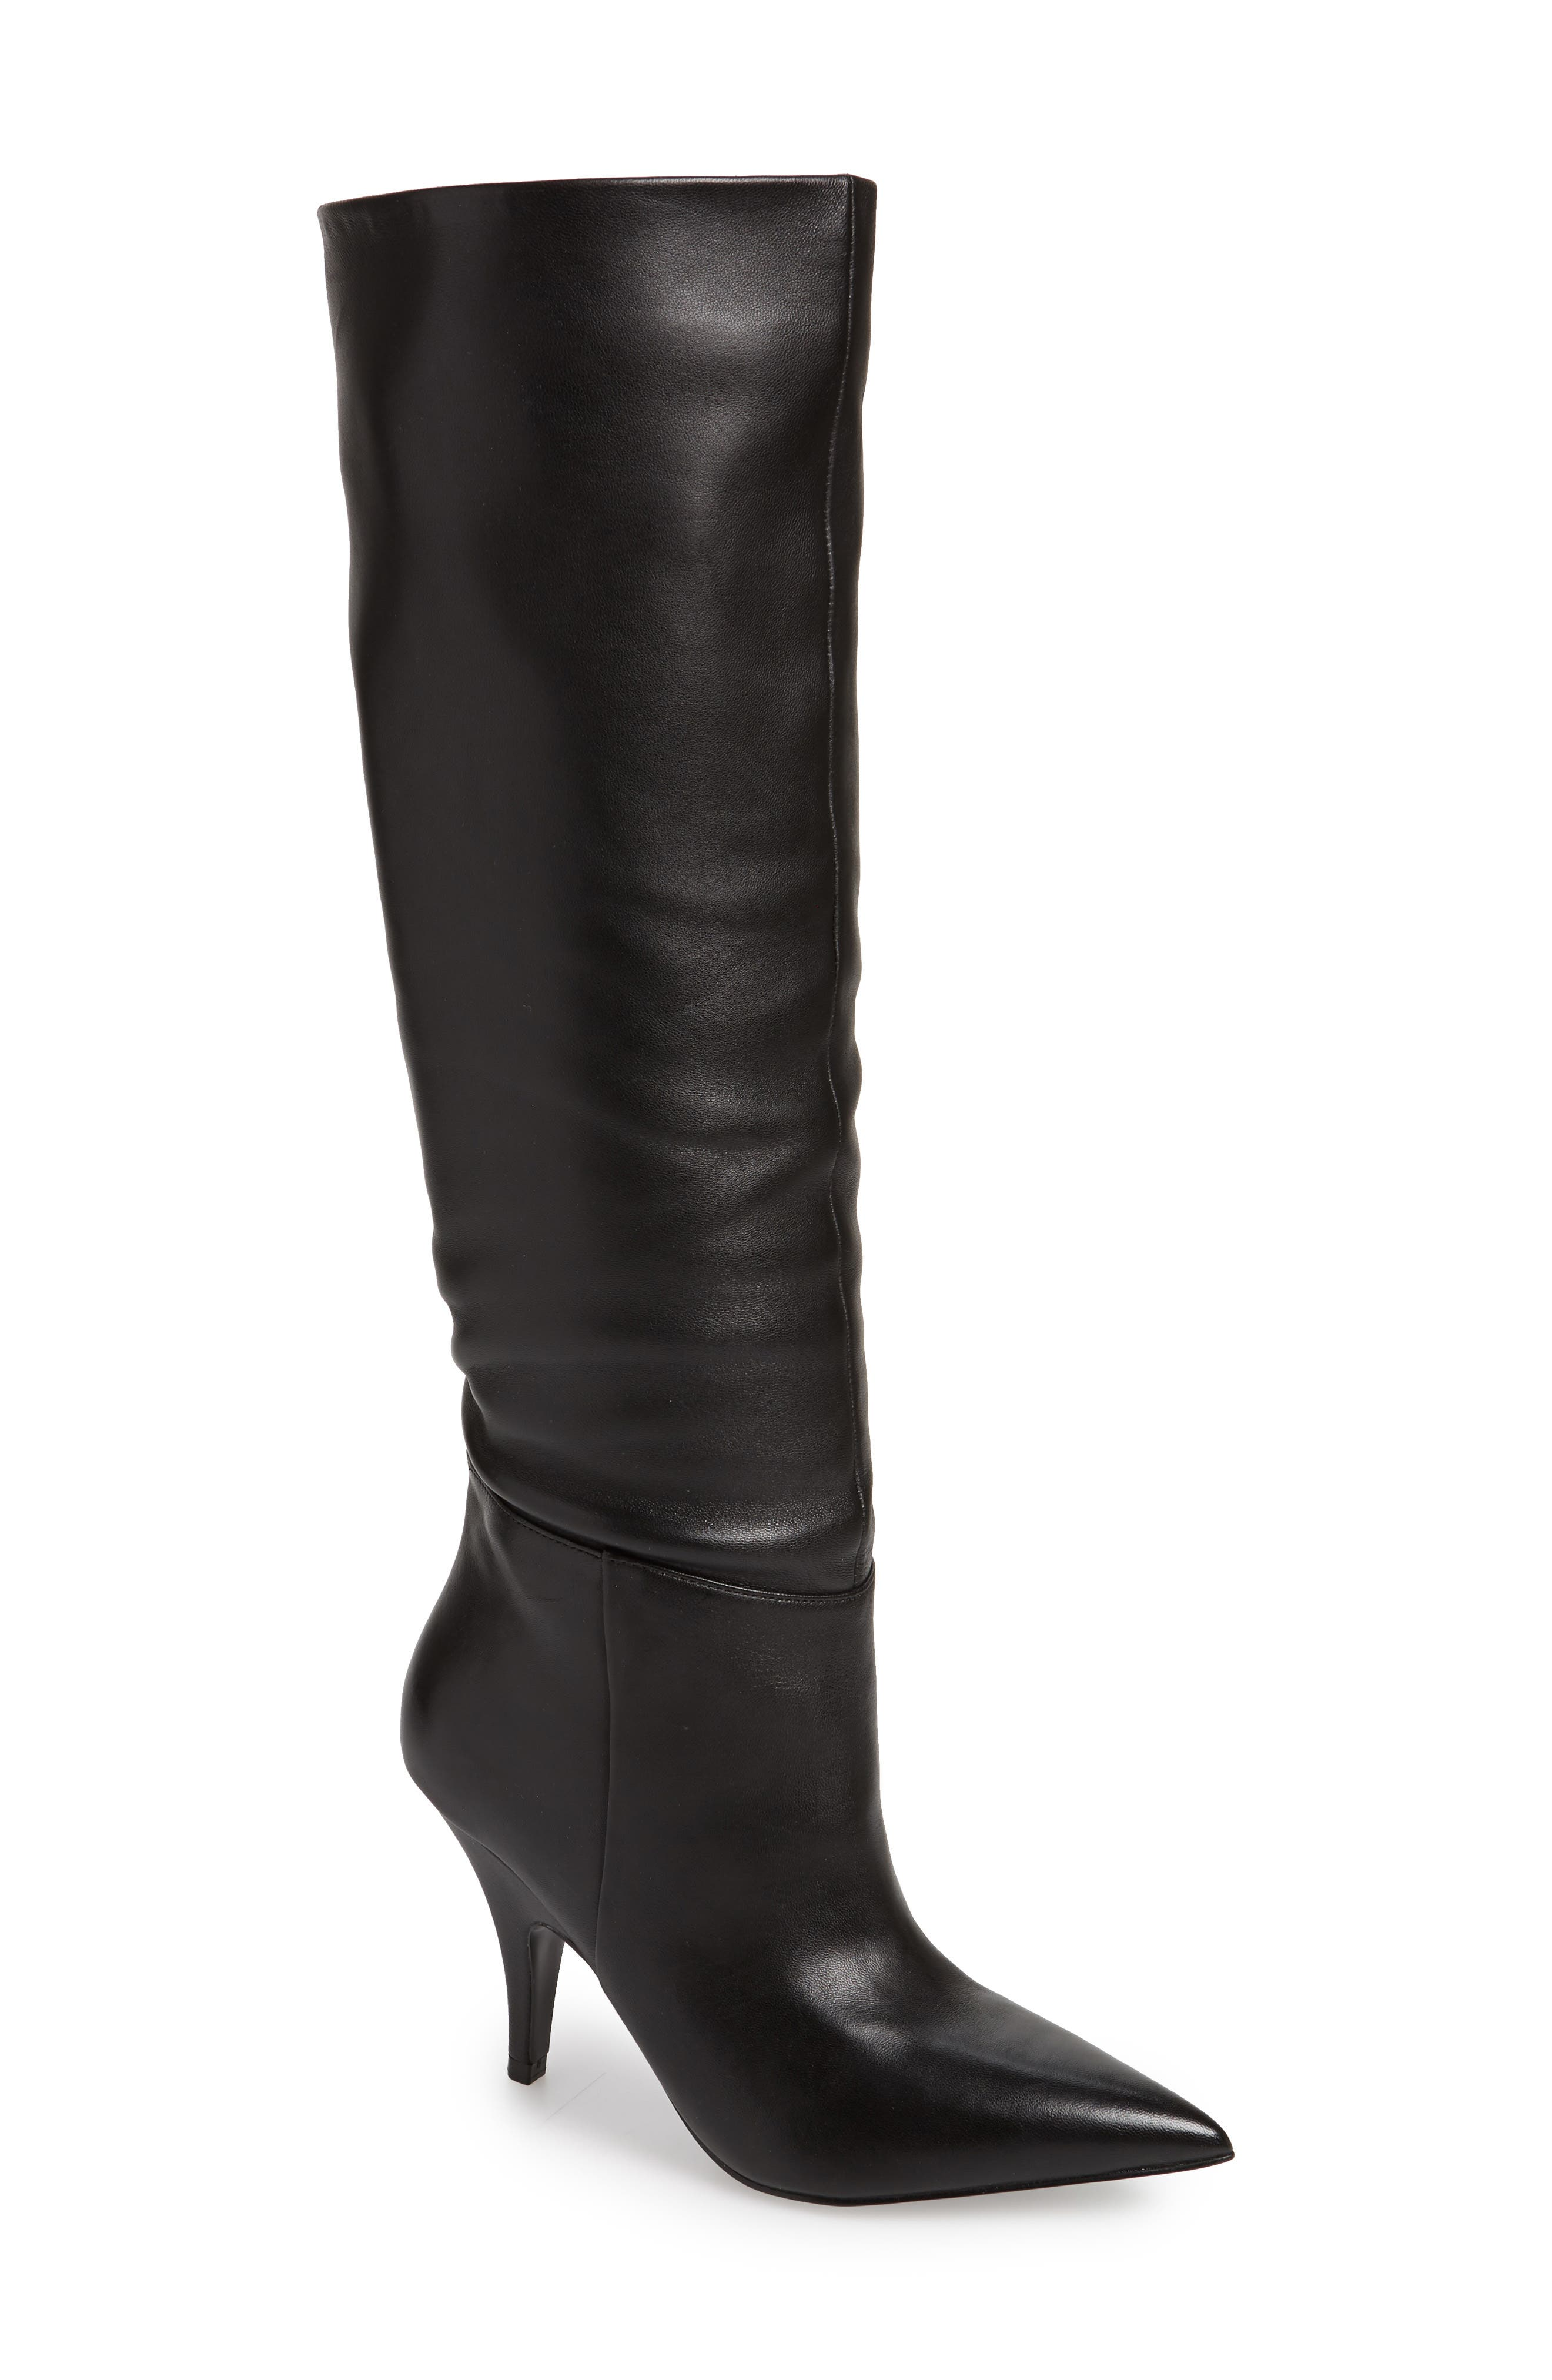 KENDALL + KYLIE Women'S Calla Leather Pointed Toe Heel-Heel Boots in Black Leather